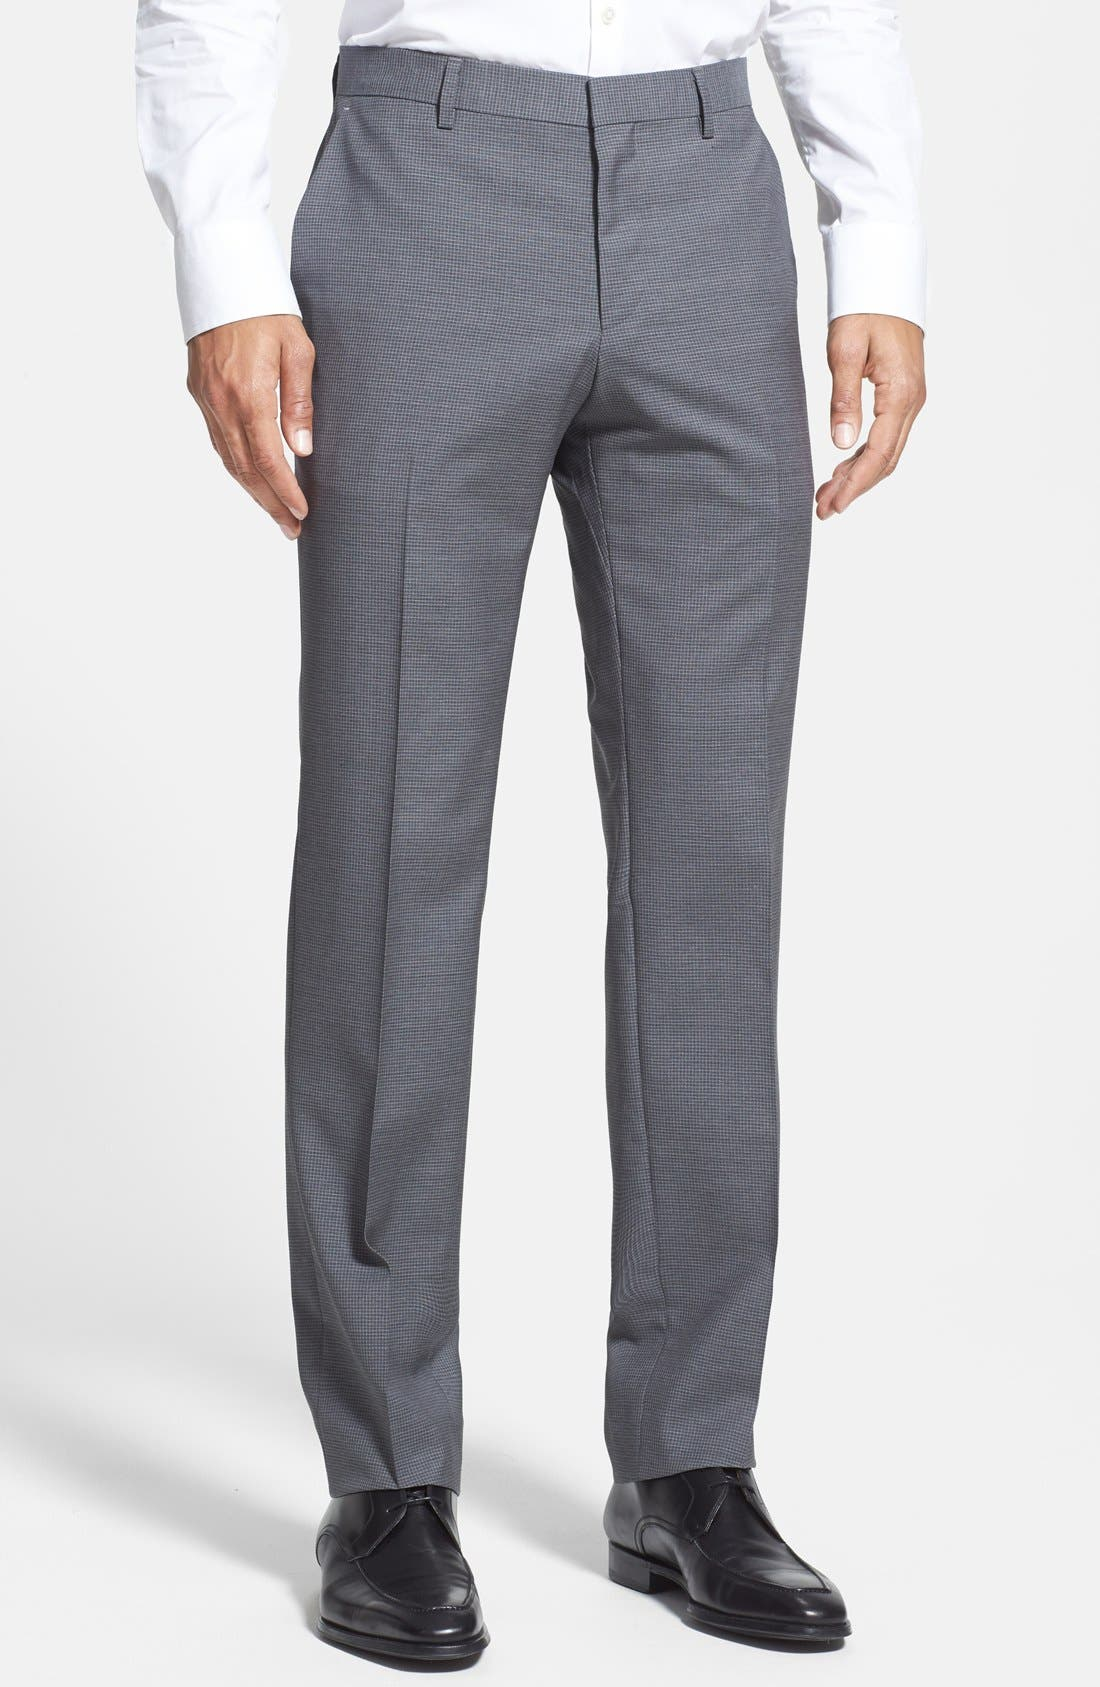 Main Image - BOSS HUGO BOSS 'Genesis' Patterned Flat Front Trousers